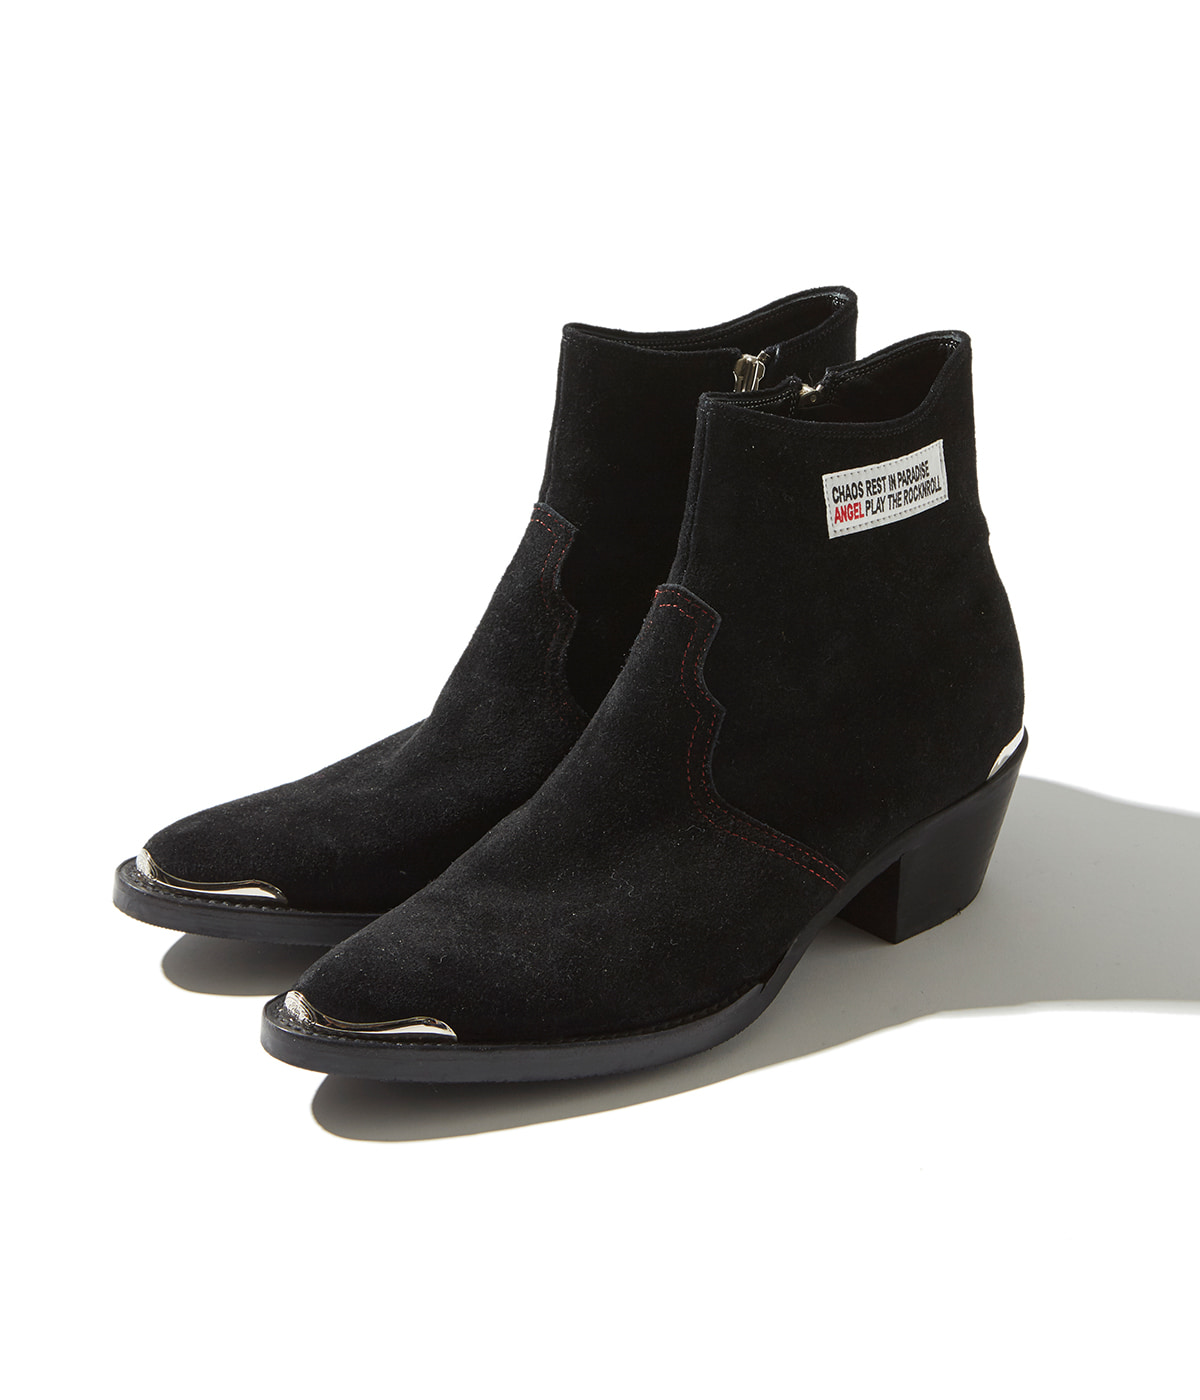 Western Ankle Boots (Black)